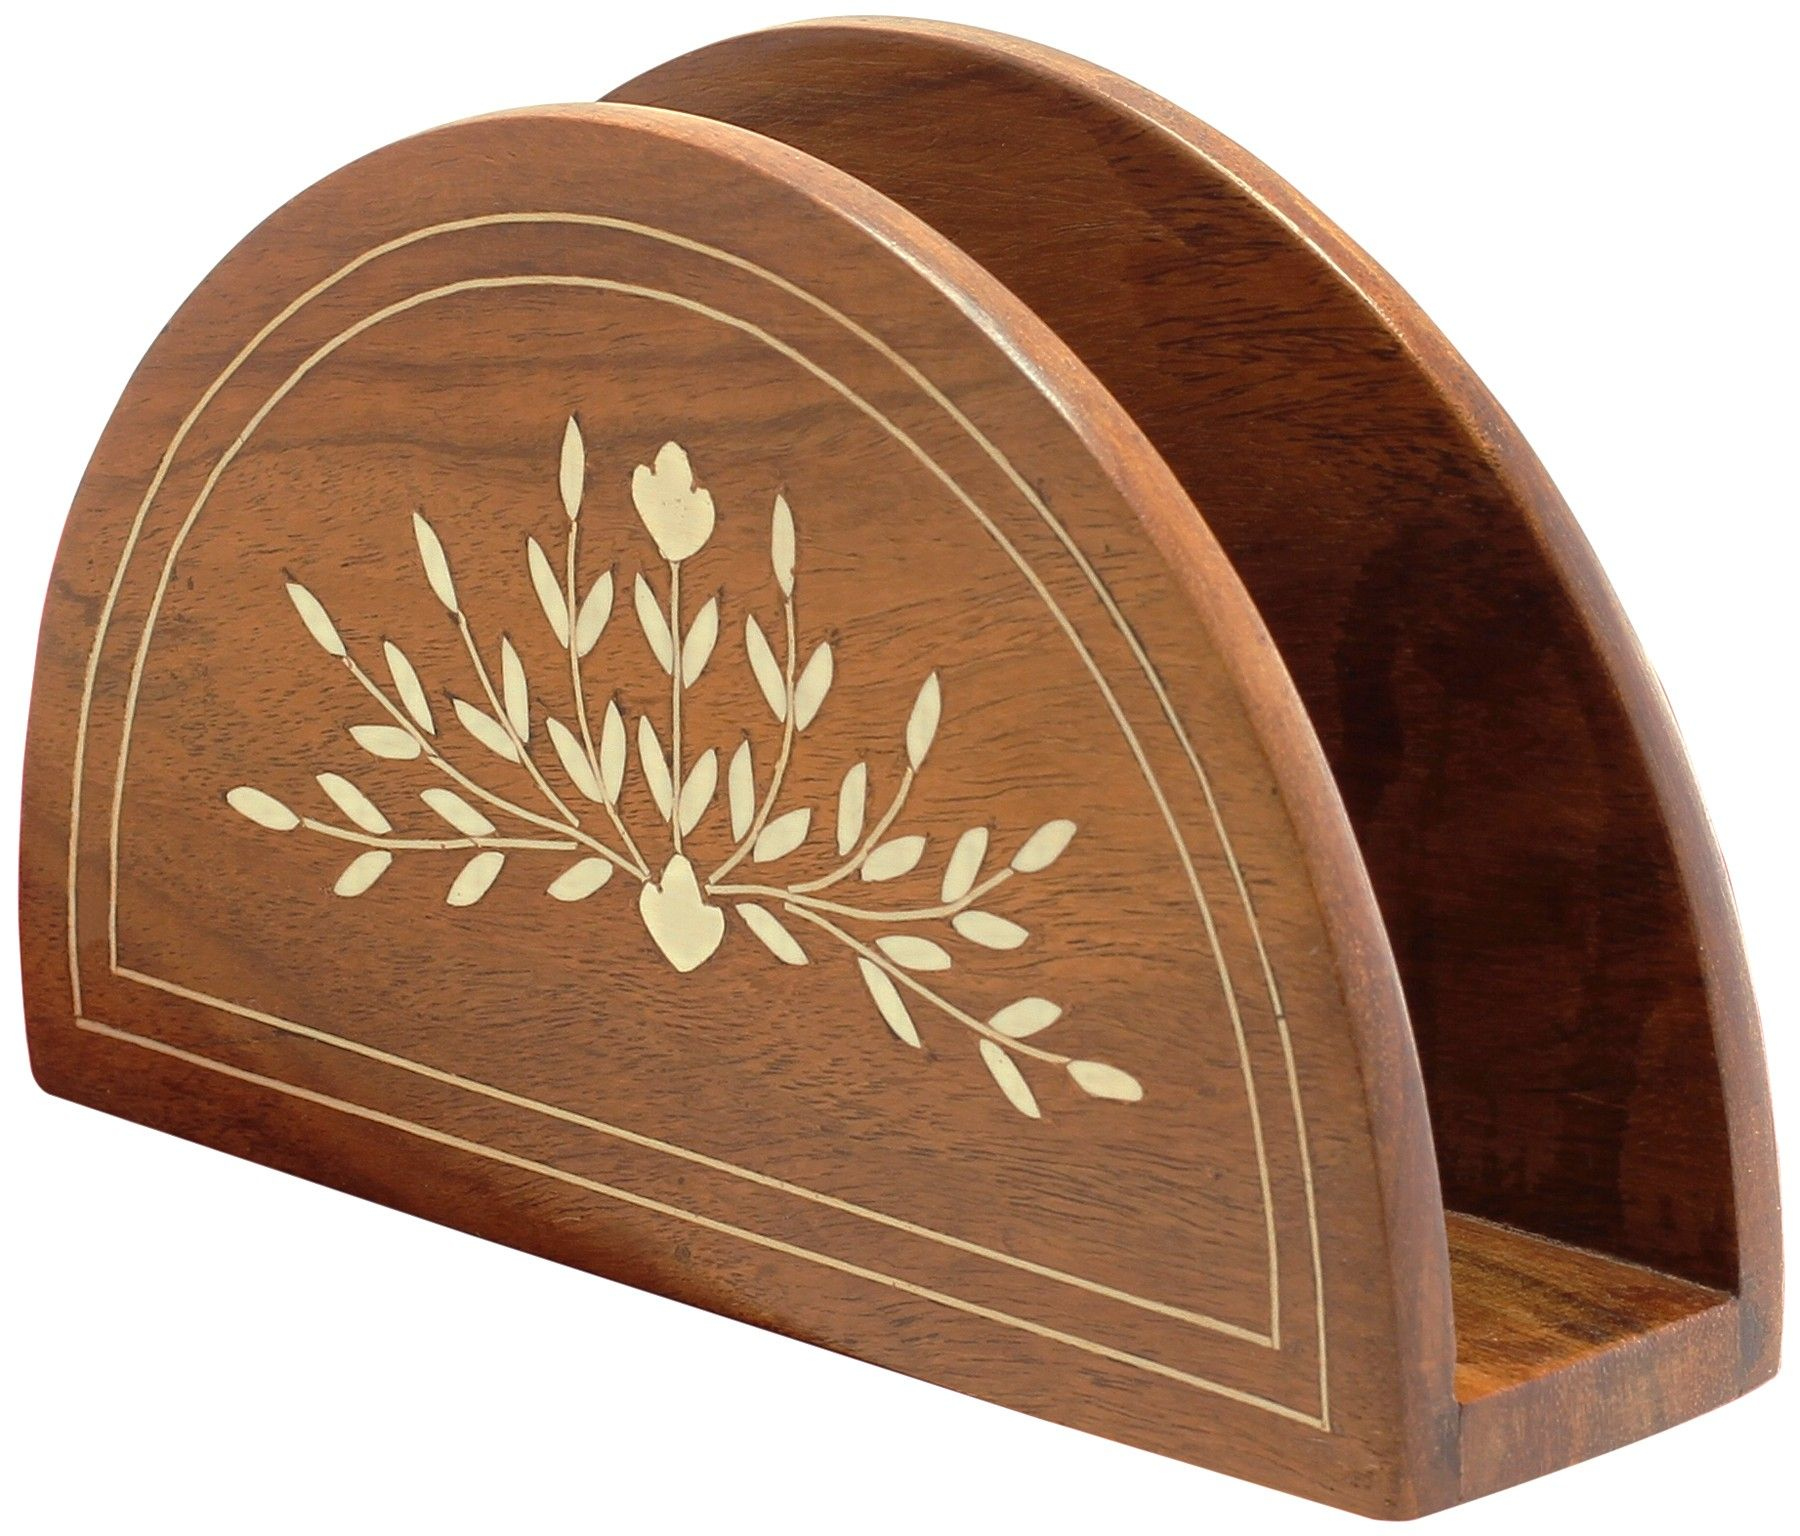 Floral Promise 6 5 Handmade Wooden Napkin Holder Decorative Floral Inlay Art Table Top Kitch Dining Table Accessories Napkin Holder Wooden Accessories